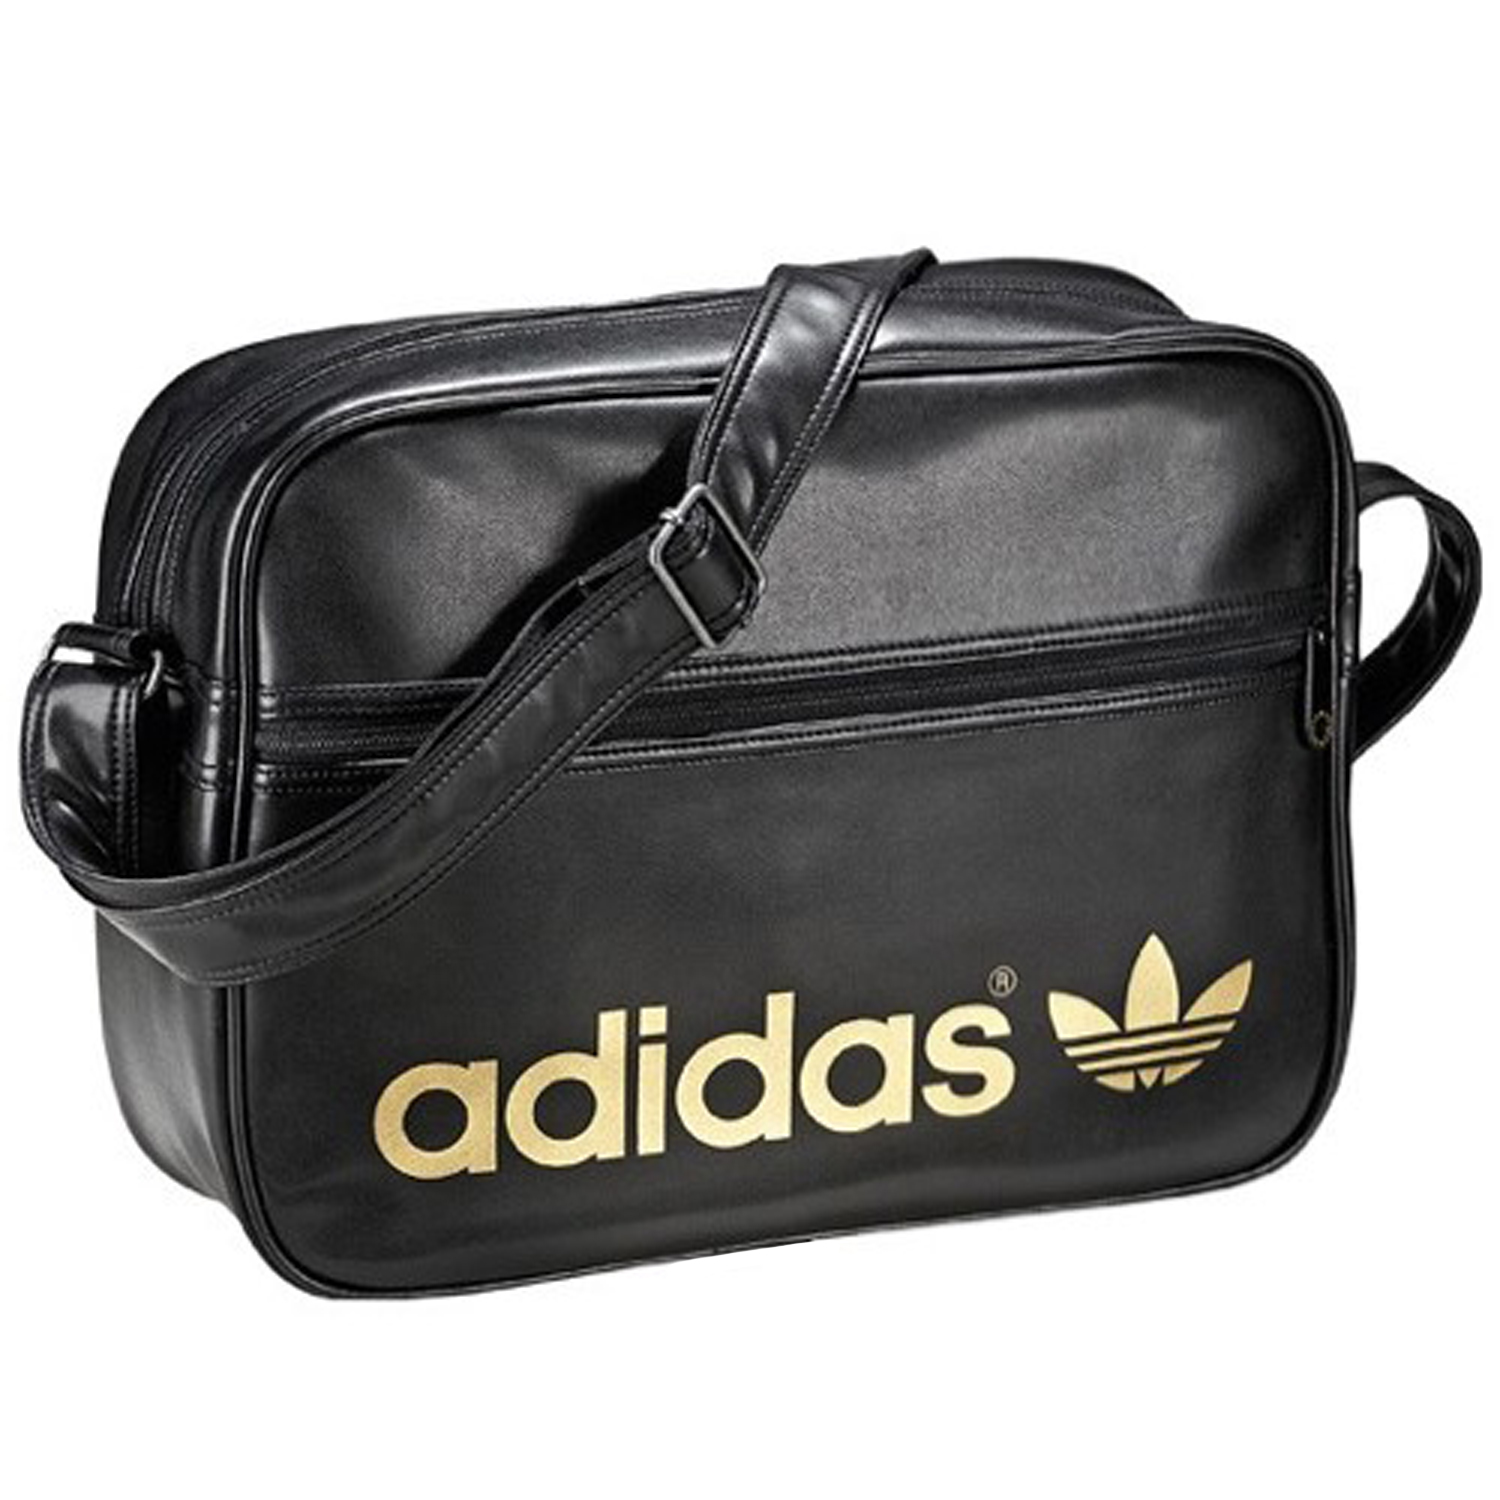 Buy adidas originals side bag   OFF57% Discounted 4e35958f9b740